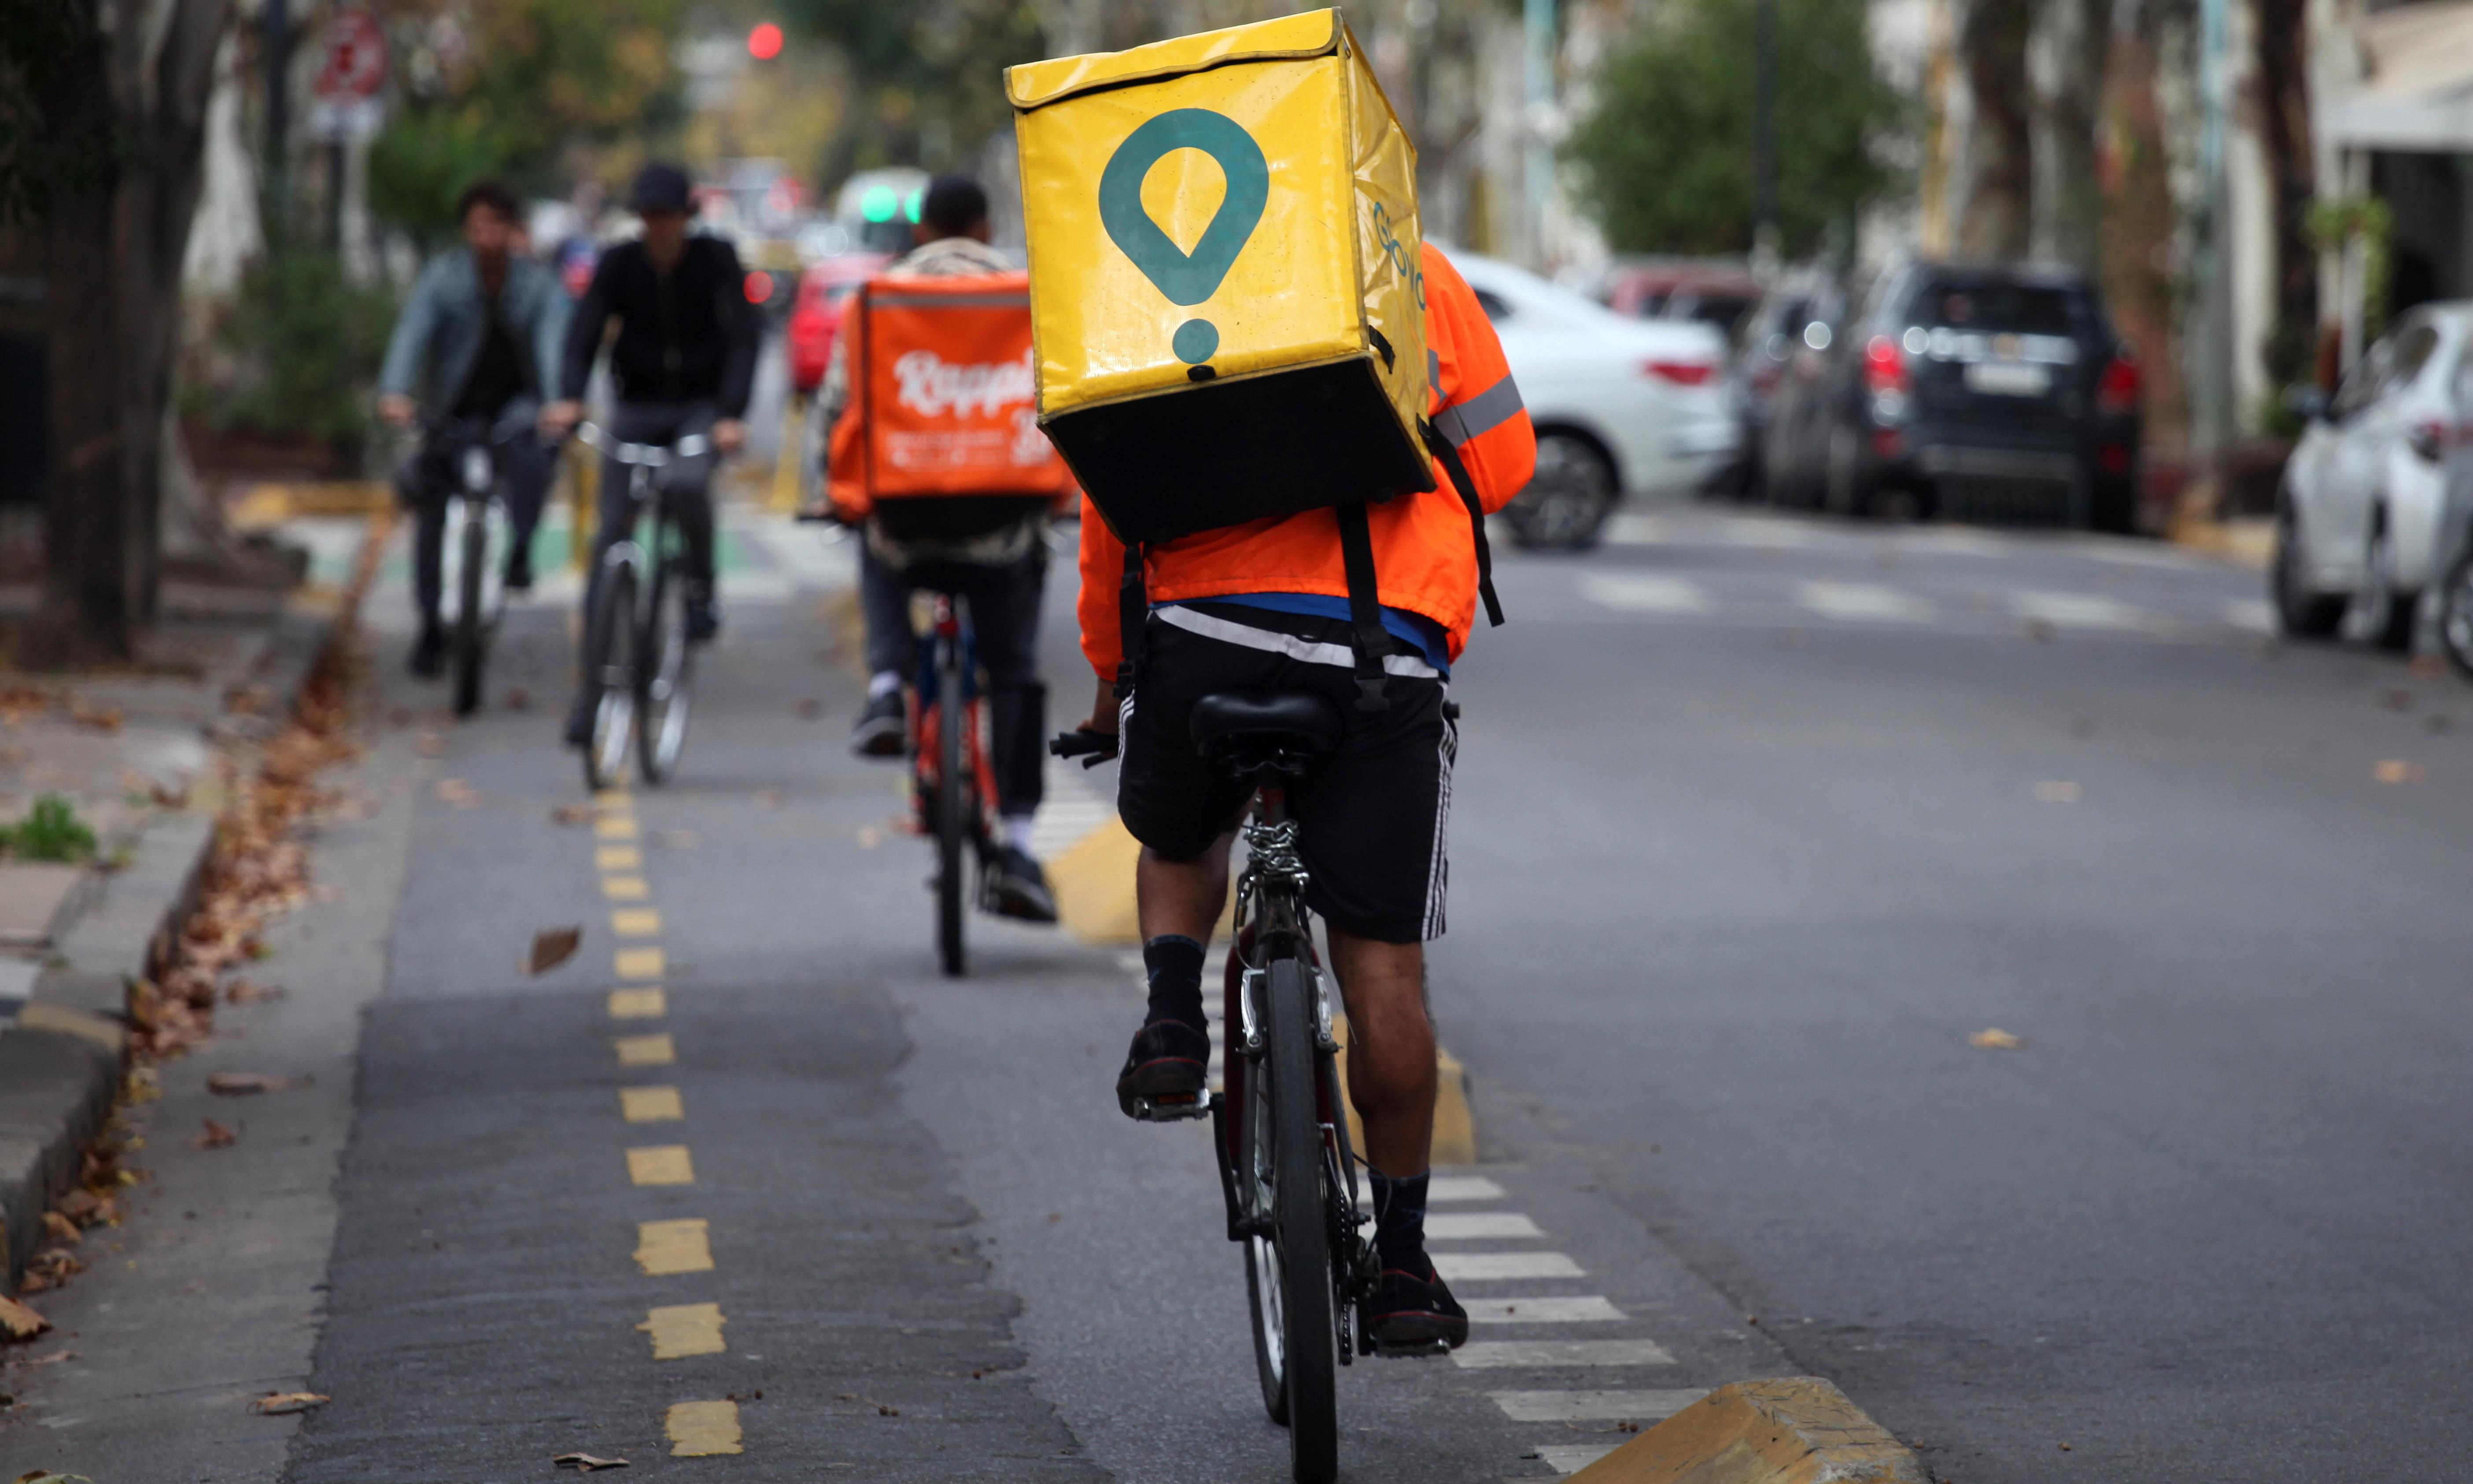 Buenos Aires judge bans delivery apps after road accidents spike